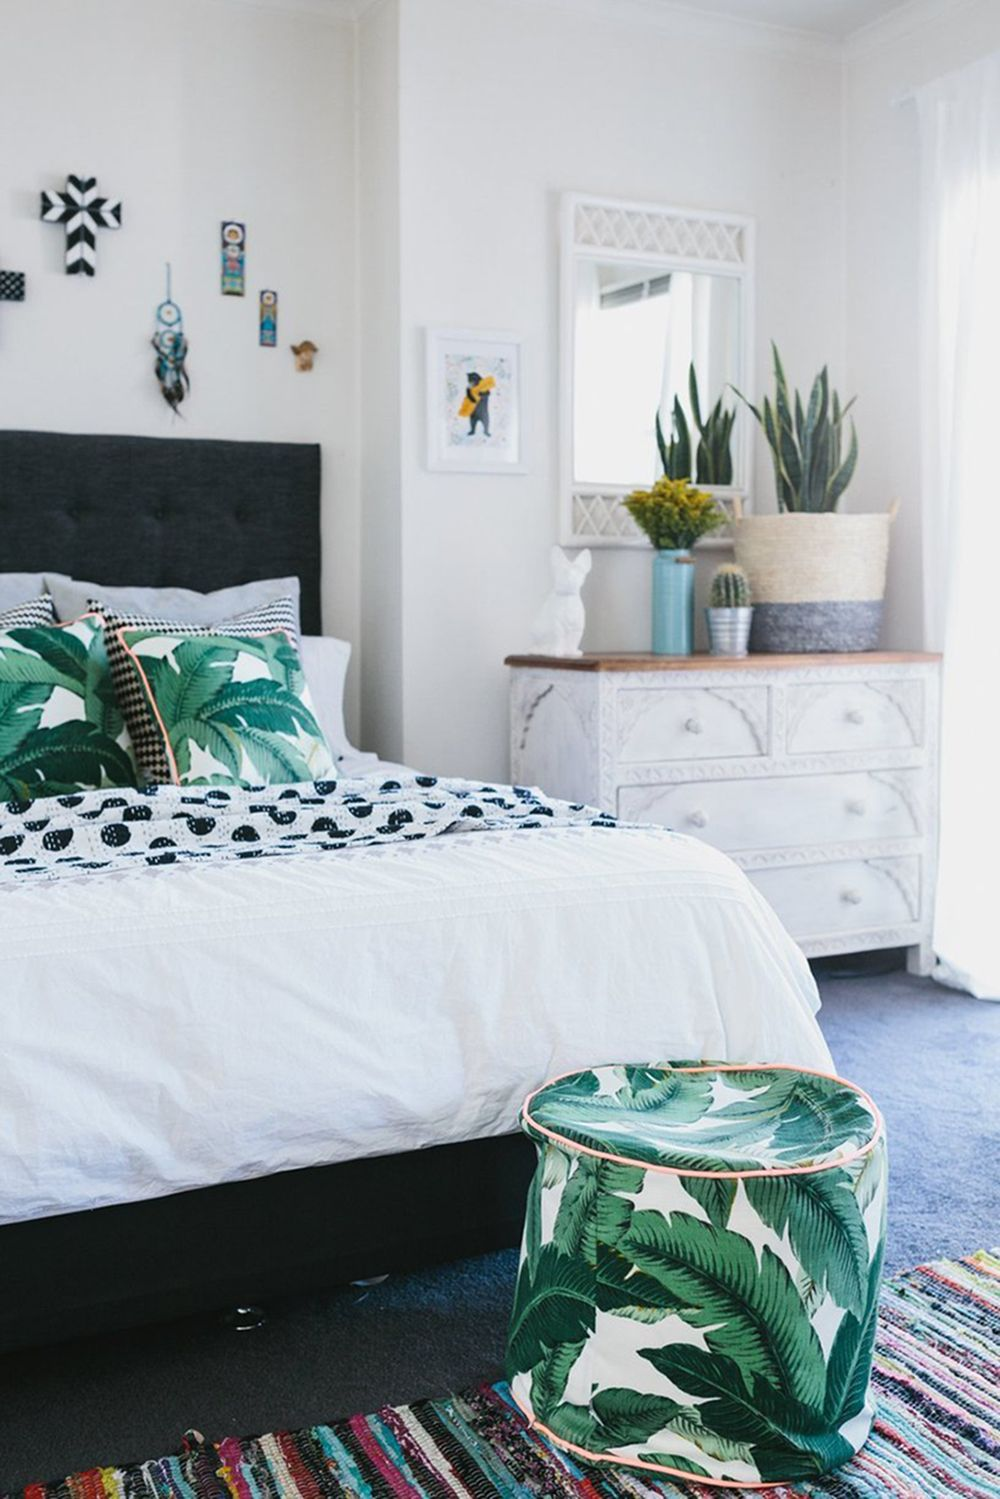 The Banana Leaf Print Works Well On Soft Furnishings Too As Seen In This Fun Apartment In